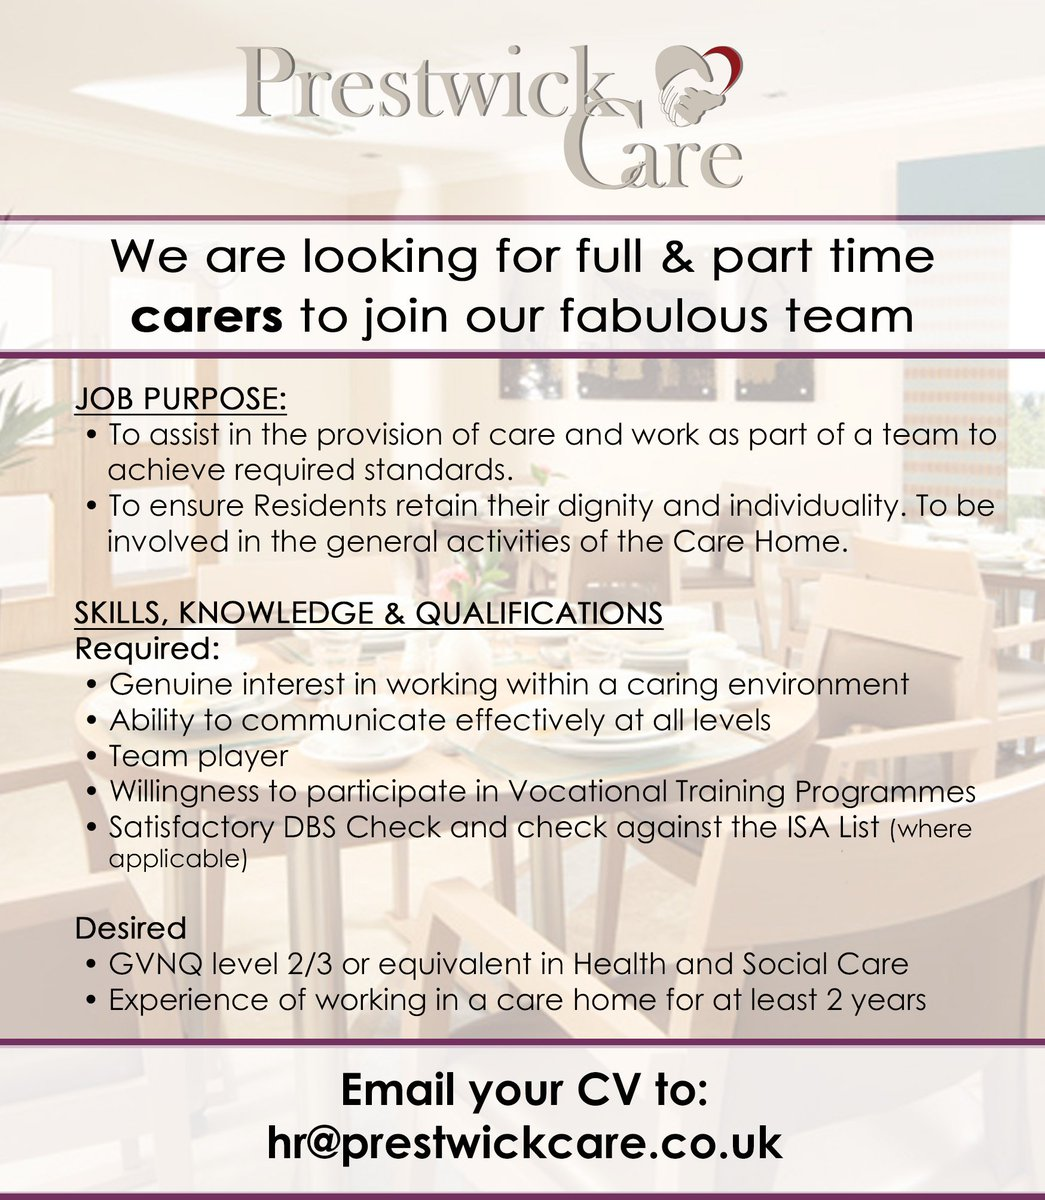 prestwick care prestwickcare twitter 0 replies 1 retweet 2 likes